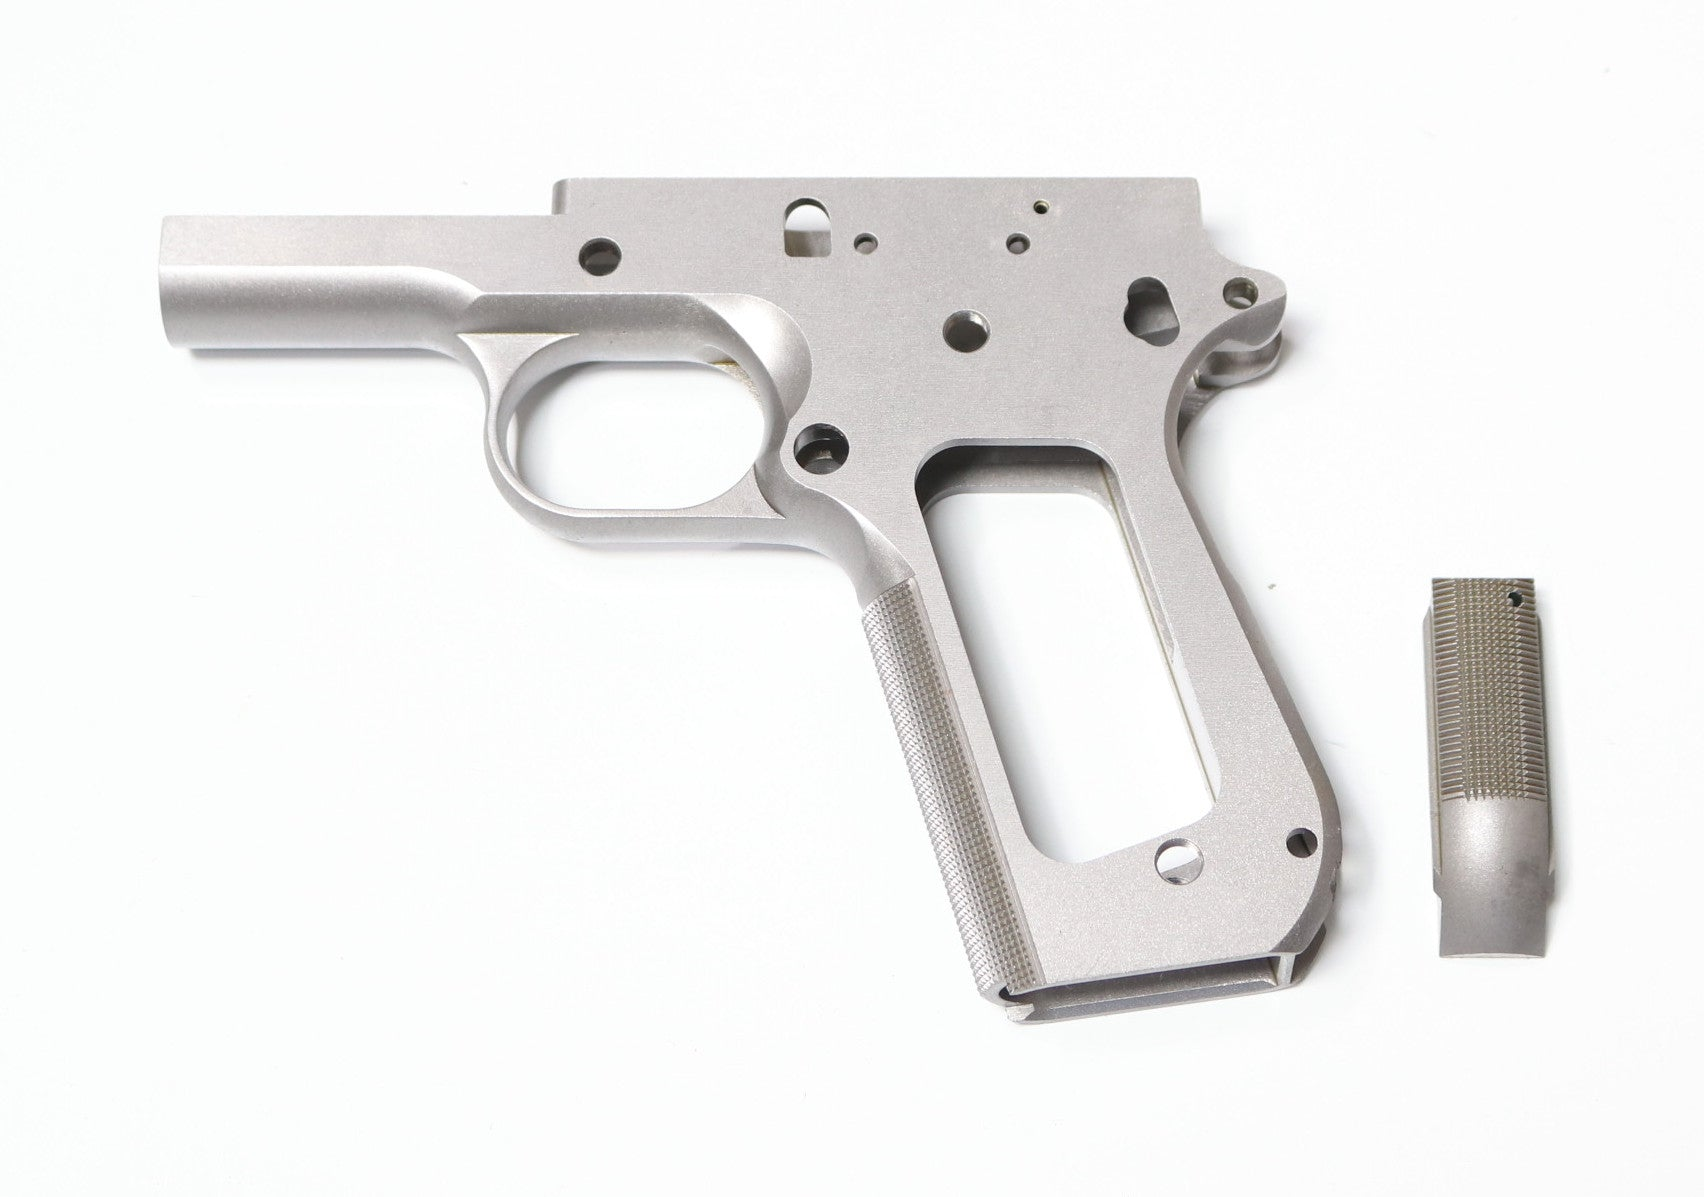 1911 80% BOB TAIL COMMANDER 416 FRAME WITH CHECKERED GRIP | 1911 ...